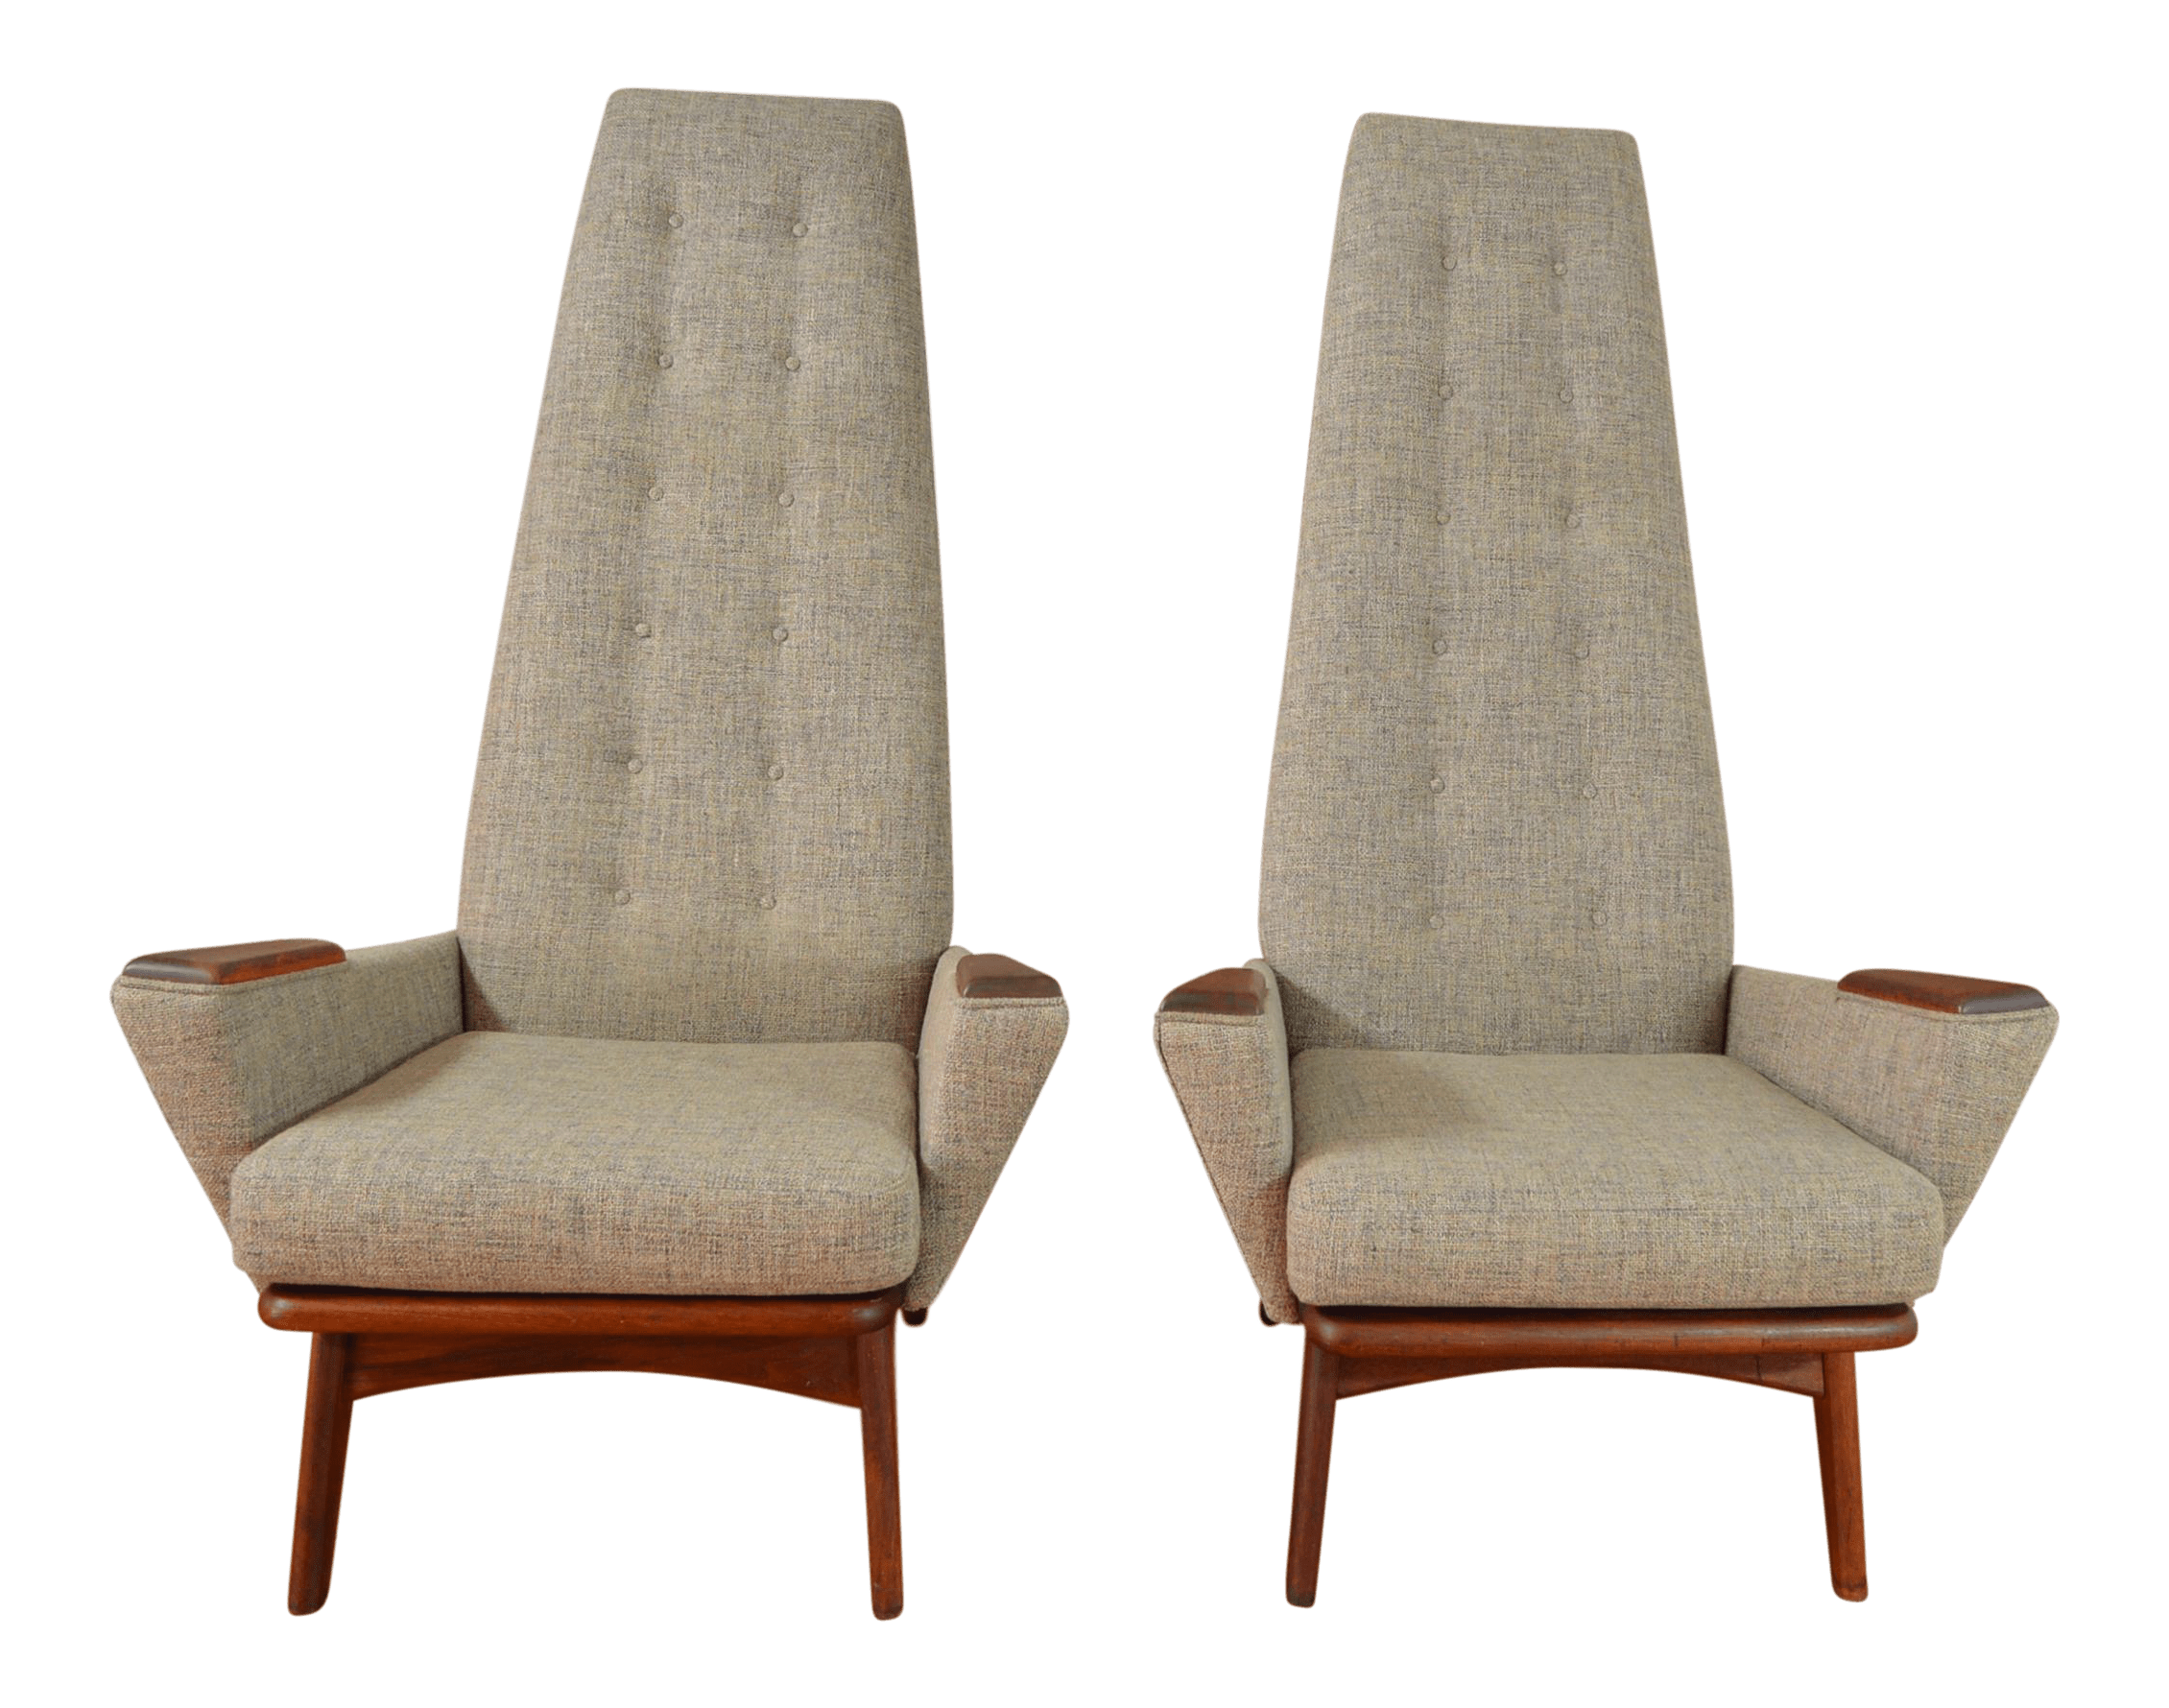 adrian pearsall chair designs wide office chairs for craft associates slim jim model 1865 c high back lounge